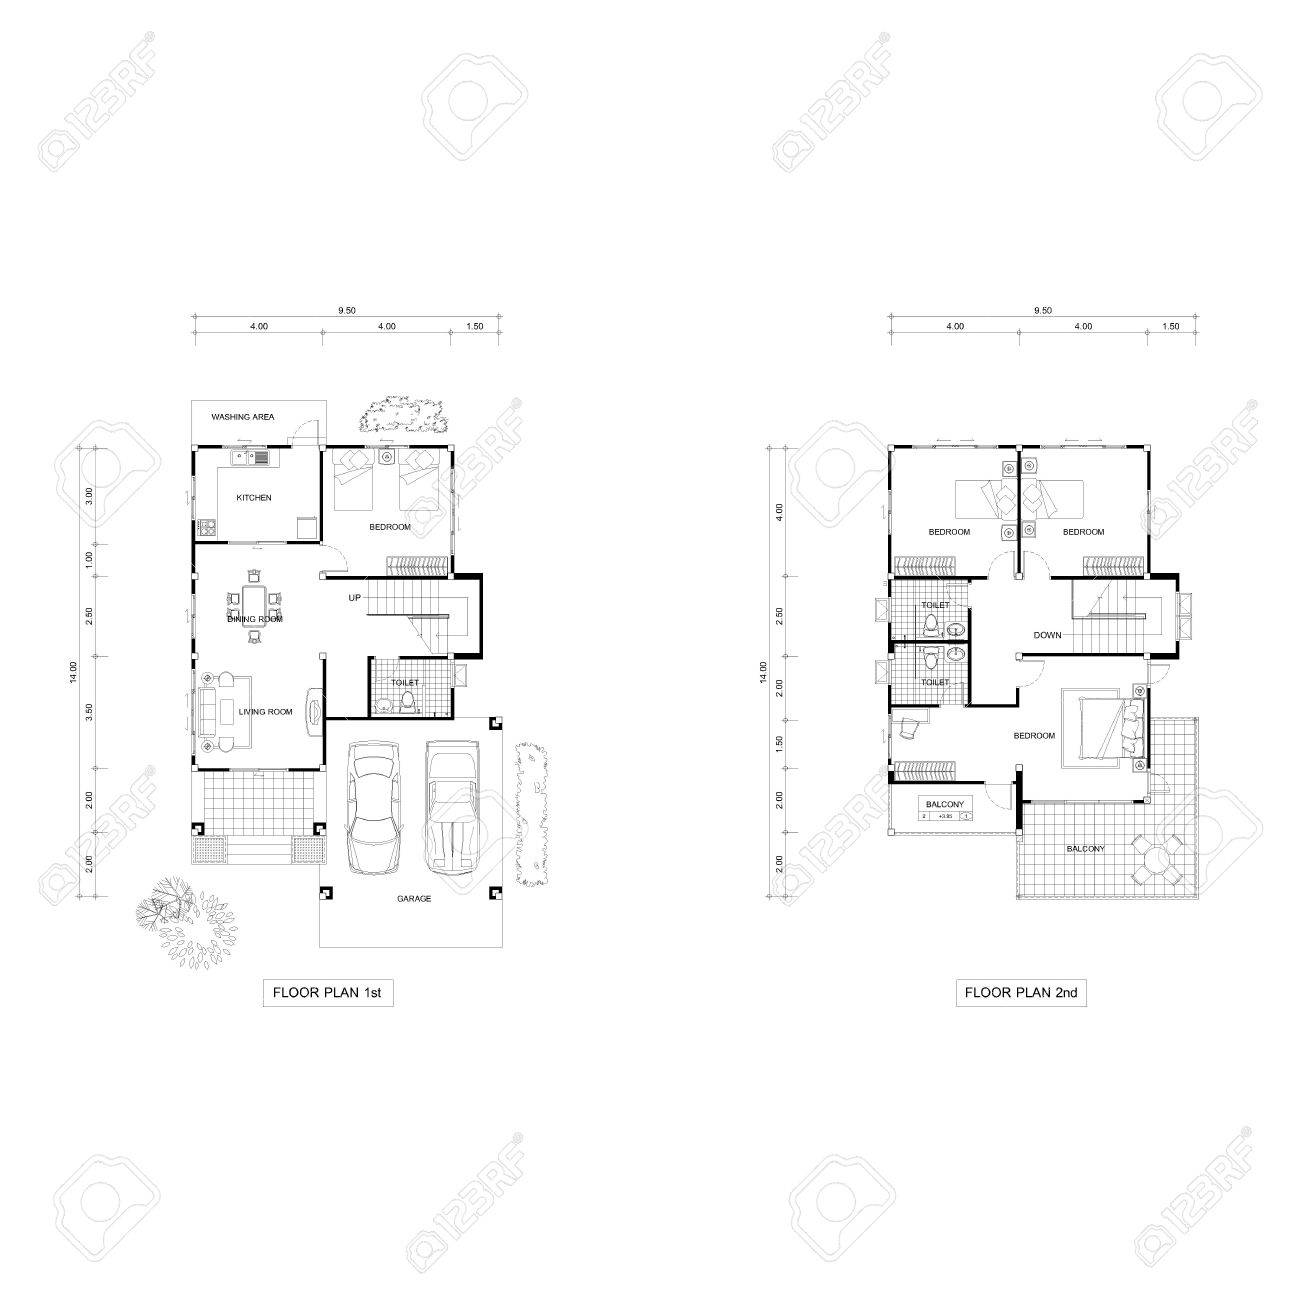 Architecture Plan Drawing Design House  Plans Downstairs And    Stock Photo   Architecture plan drawing design house  Plans downstairs and upstairs